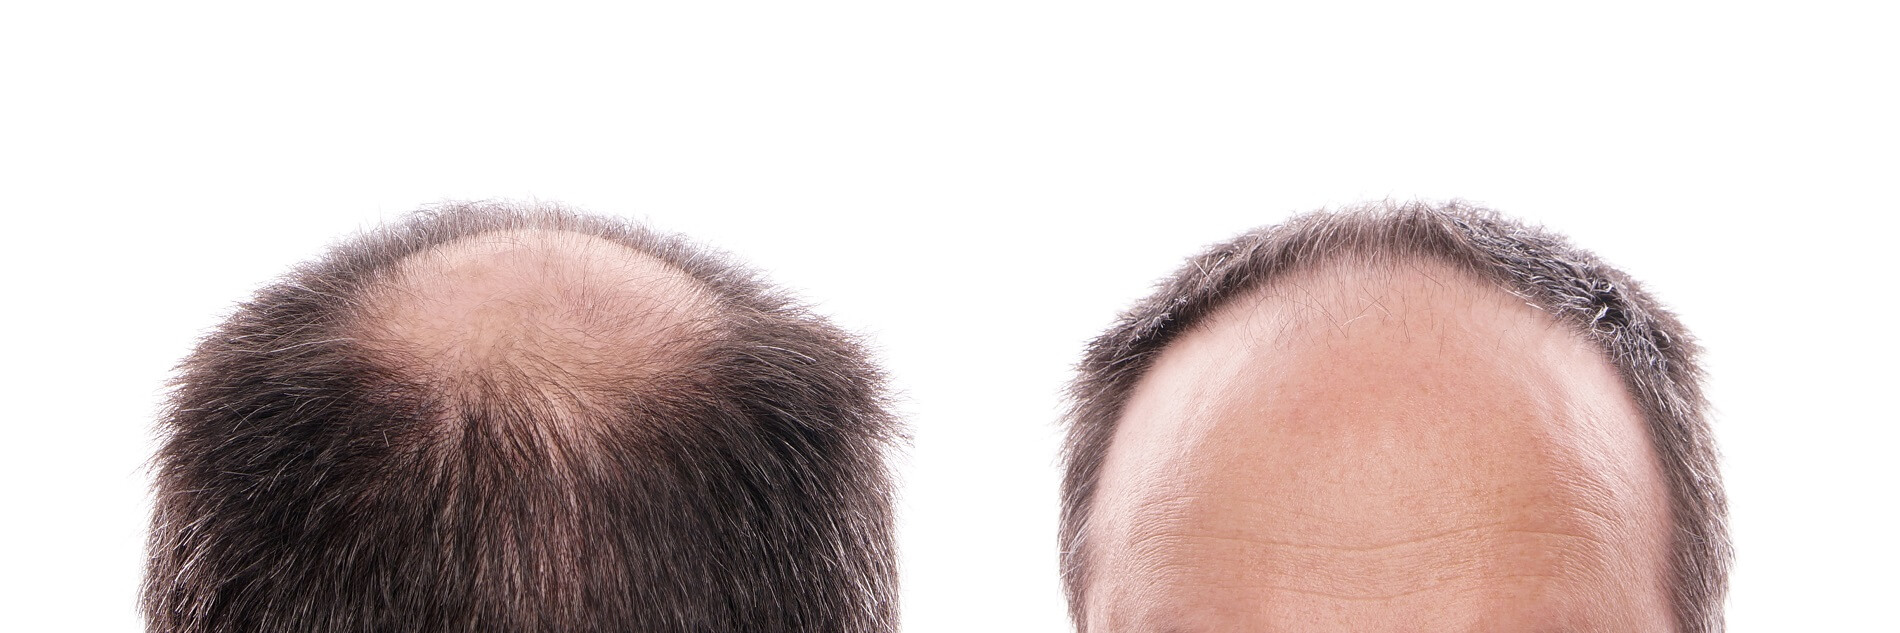 Hair Transplantation  in Argentina